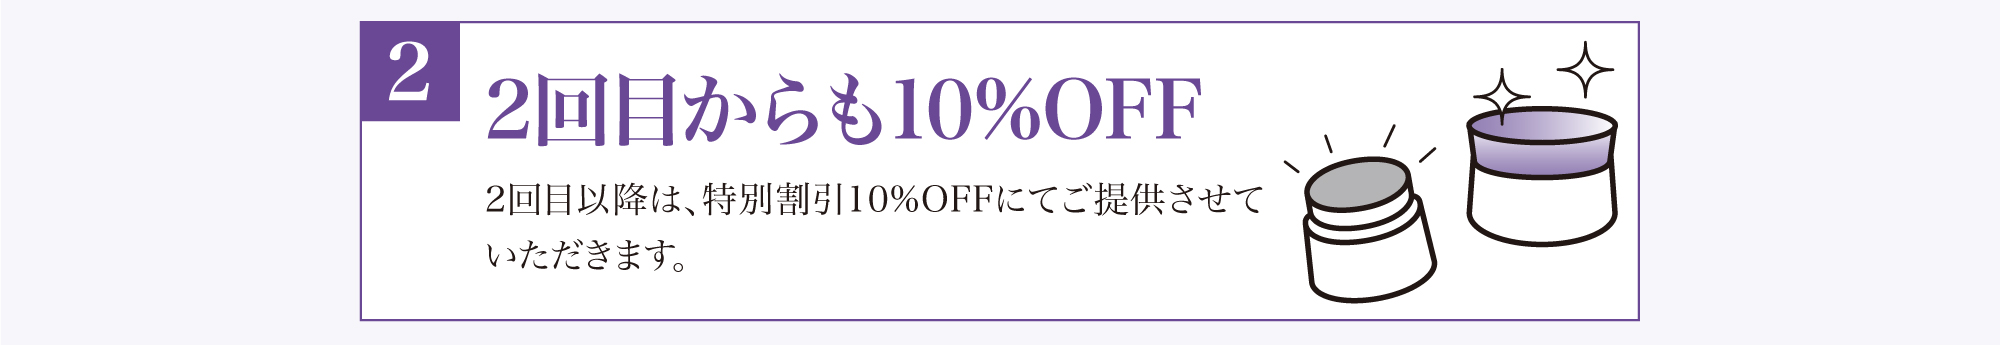 REISE ライゼ 送料無料、2回目からも10%OFF、初回のみ全額返金保証